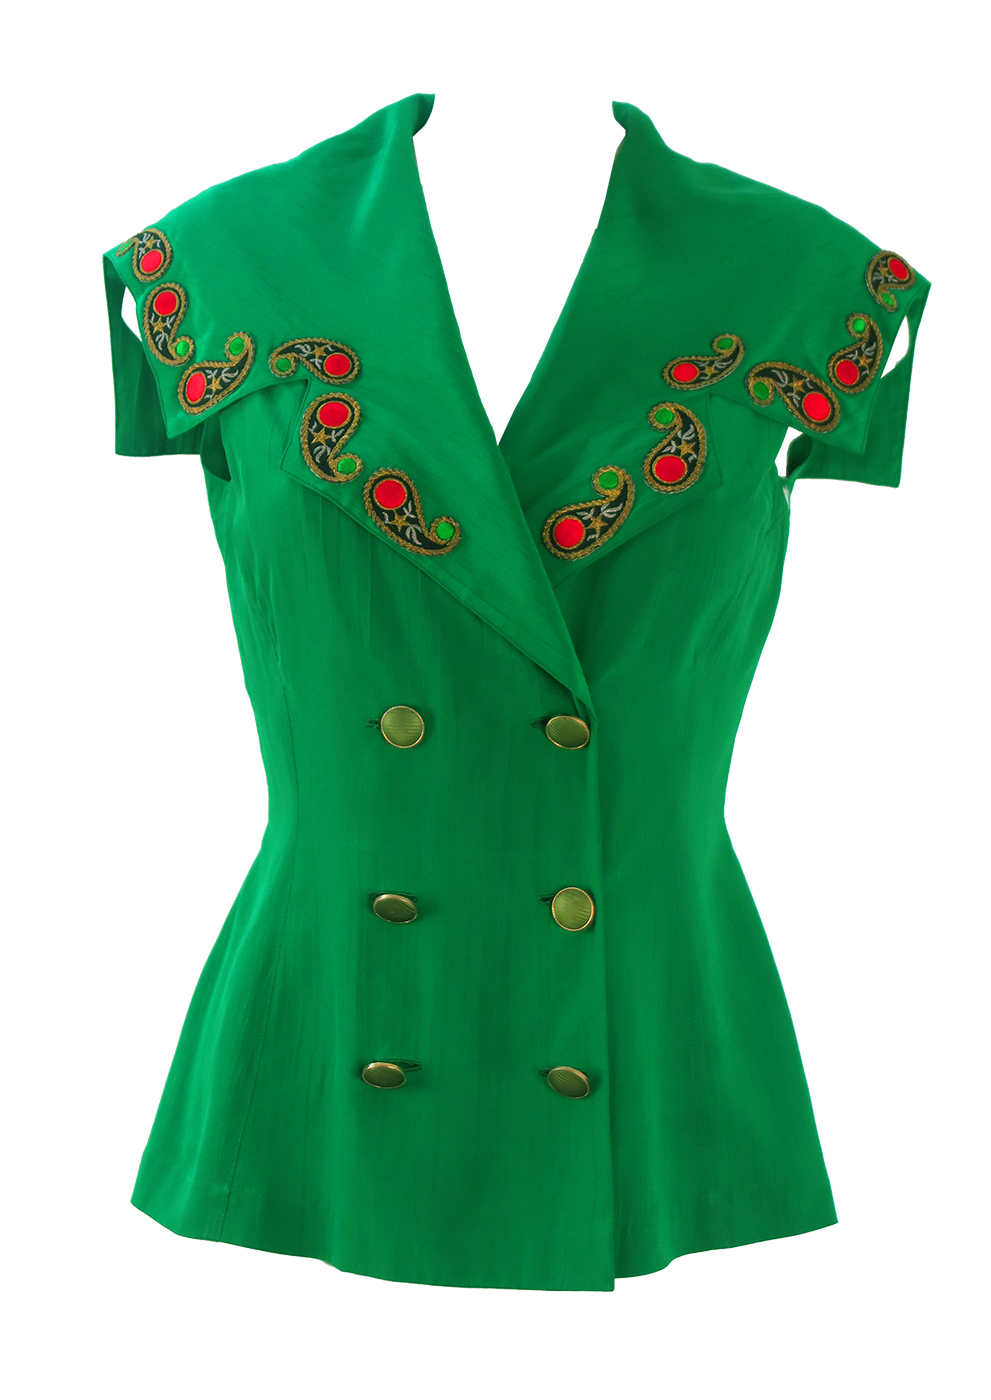 7d75ee4e2ded87 Emerald Green Sleeveless Top with Large Collar   Paisley Applique Detail -  S M